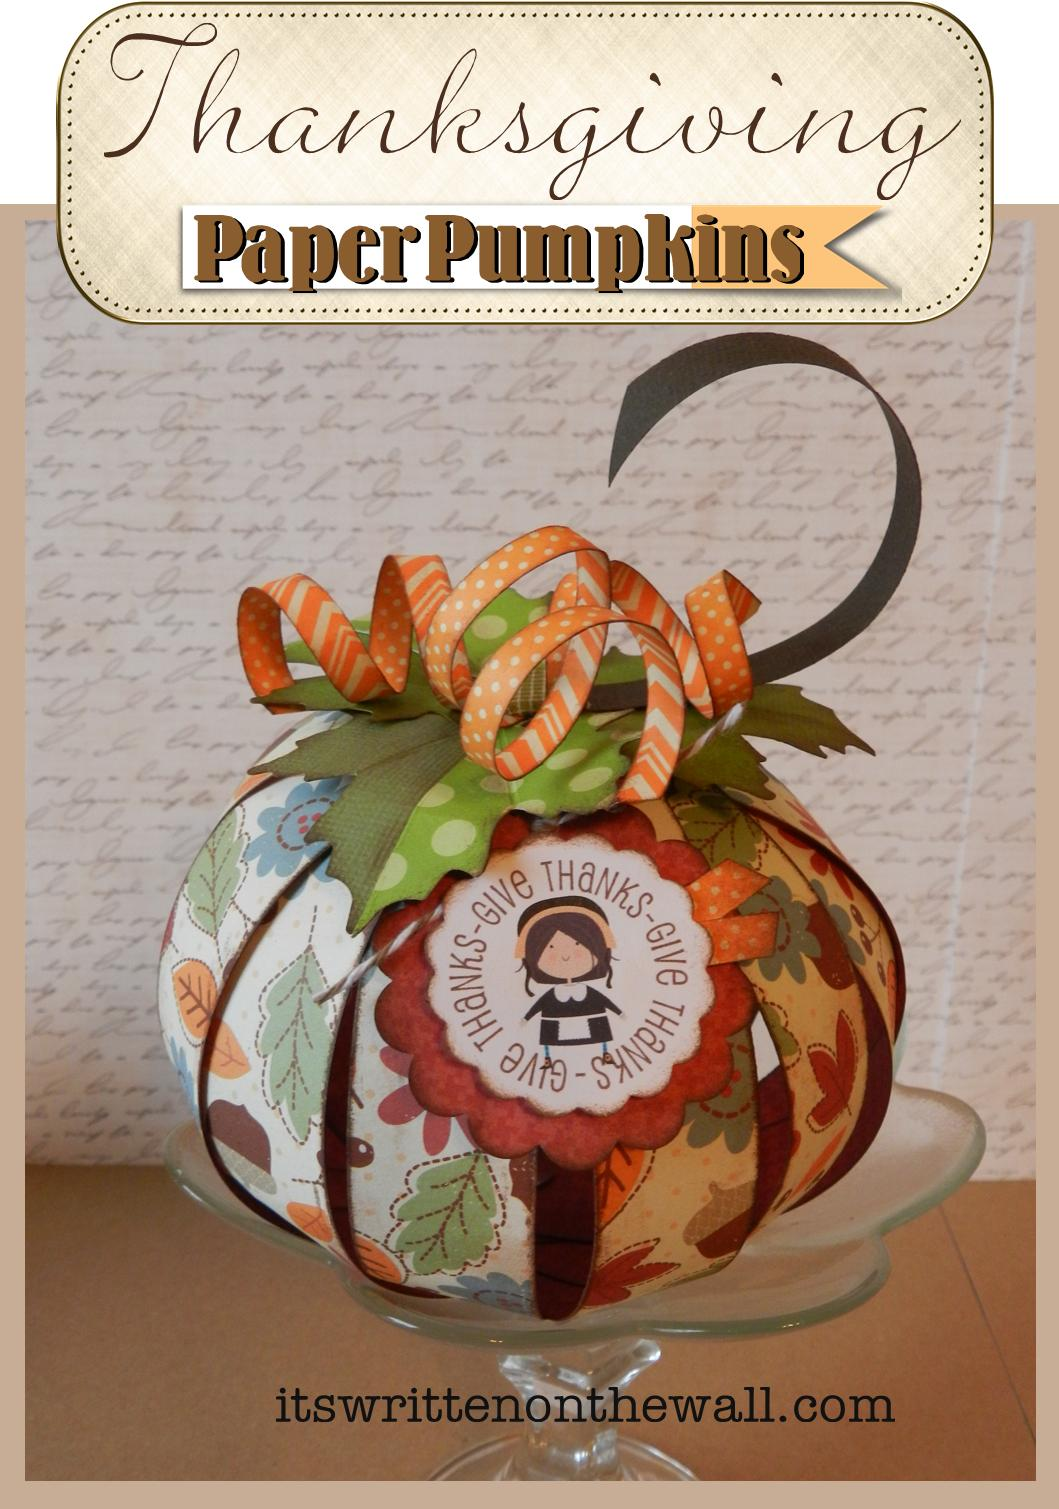 Paper thanksgiving decorations - photo#24